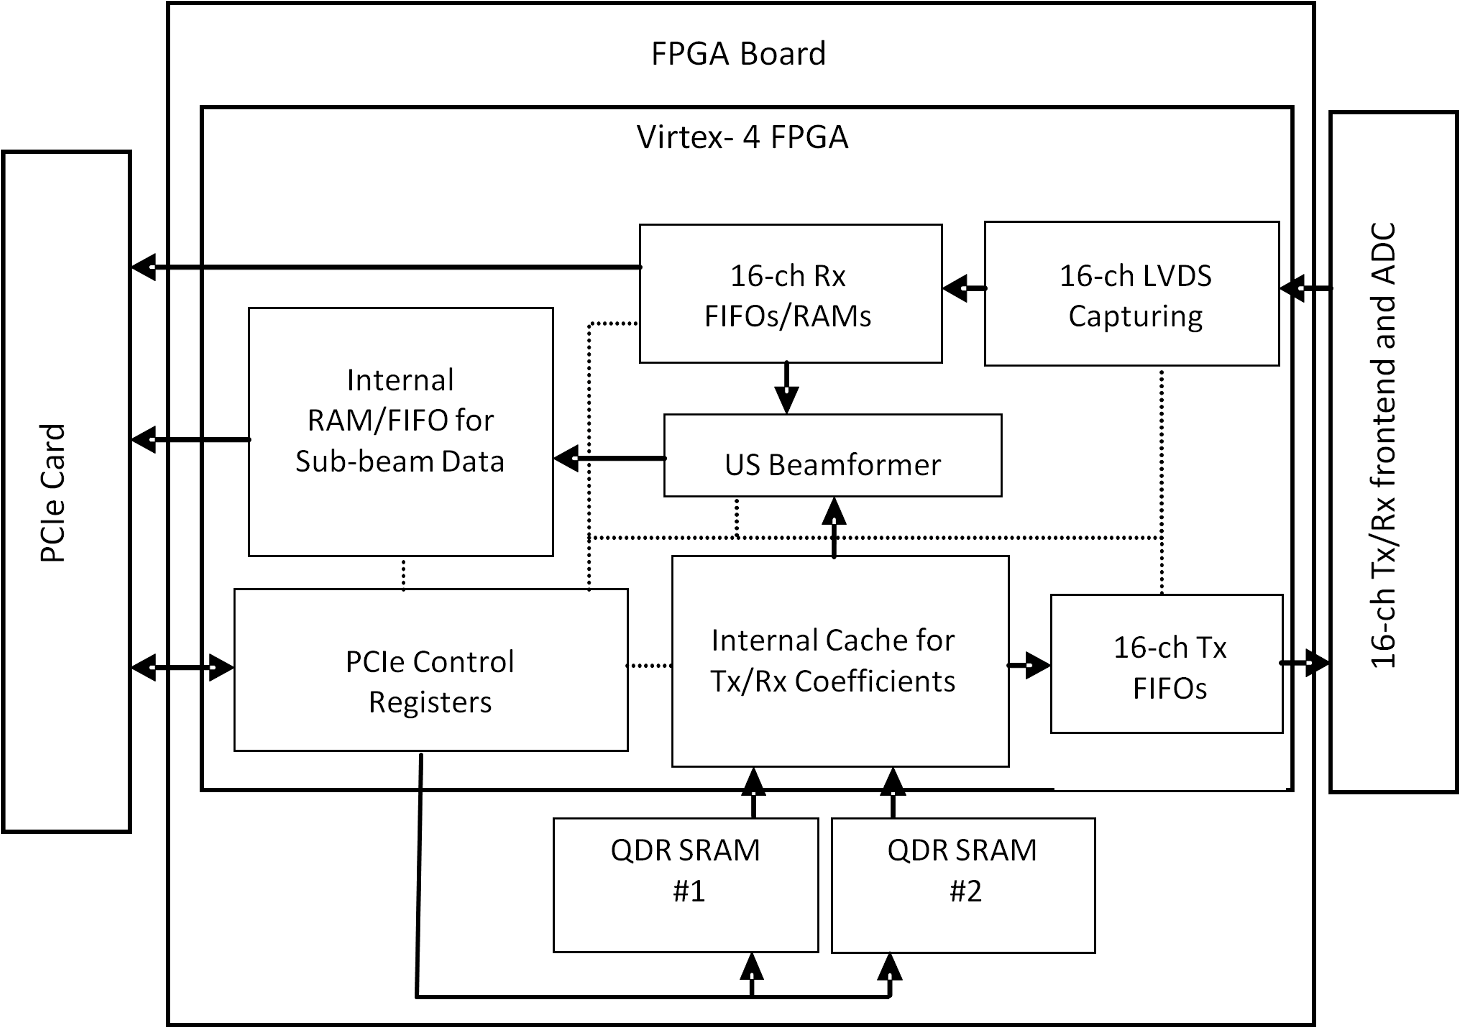 Interlaced Photoacoustic And Ultrasound Imaging System With Real Fig2 It Has Been Attached An Image Of The Motherboard Block Diagram Fig 2